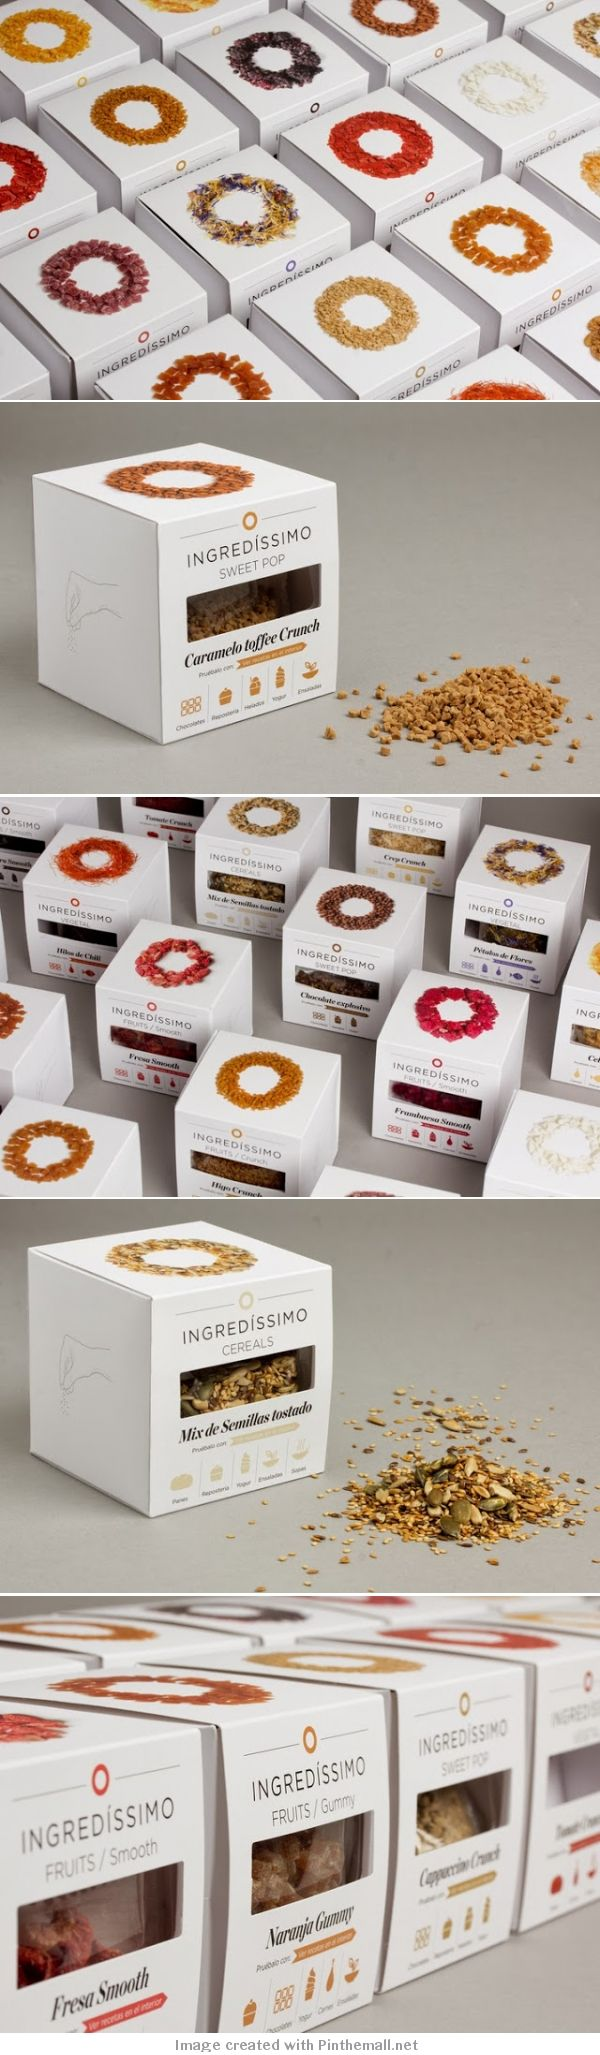 Unique Packaging Design on the Internet, Ingredissimo #packagingdesign #packaging #design